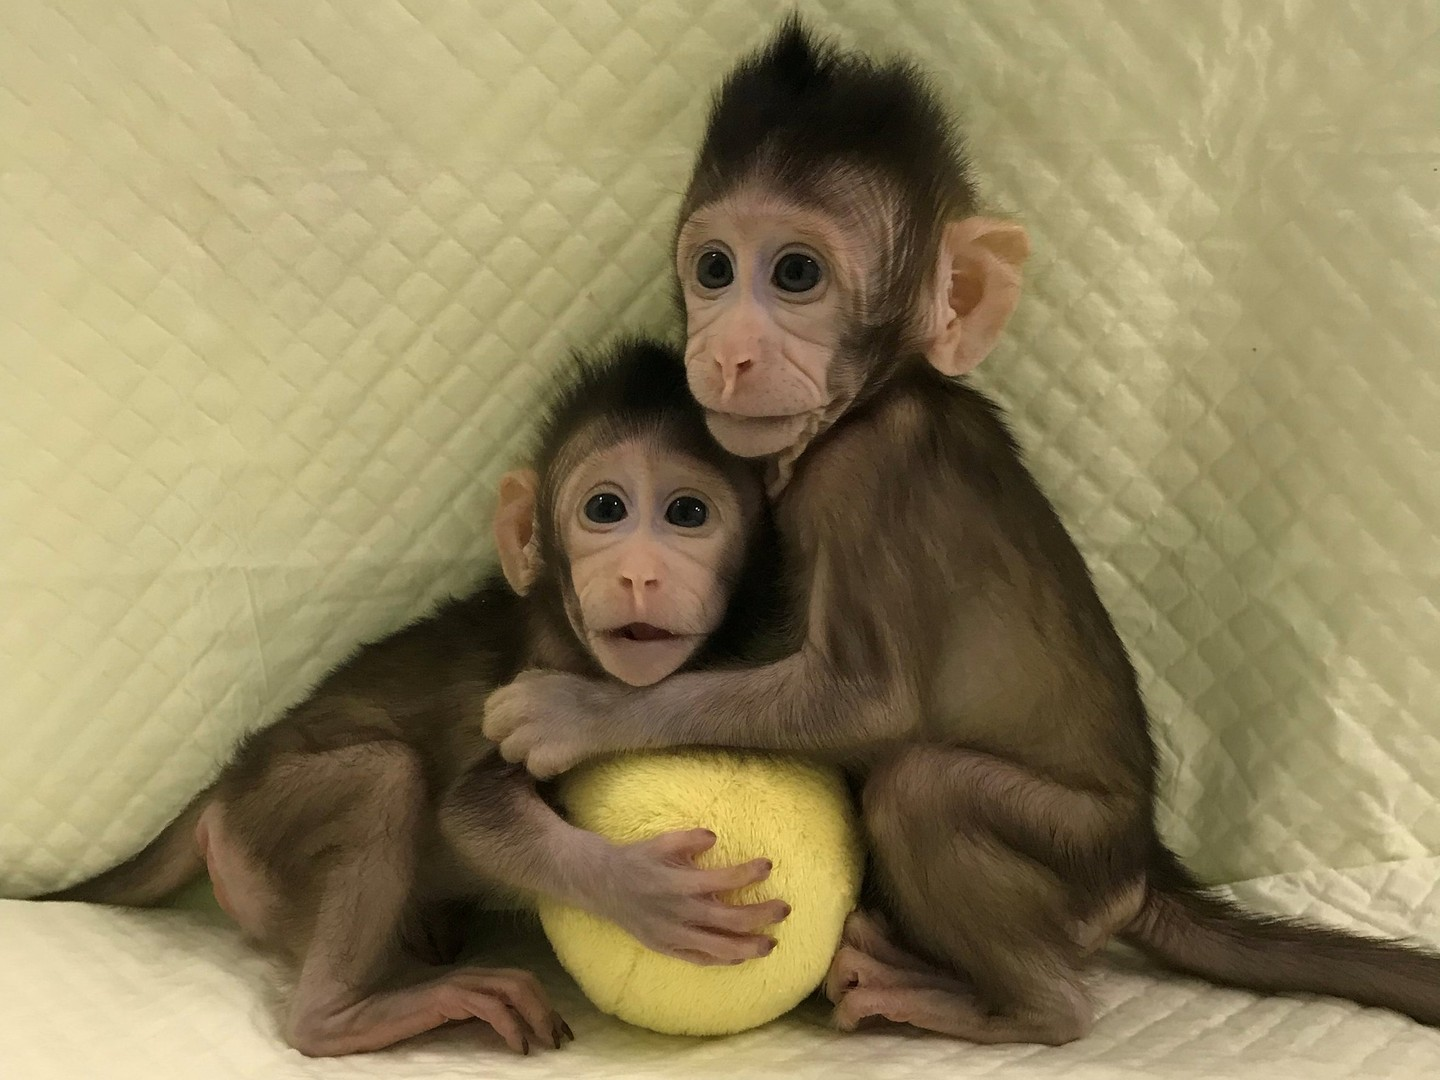 Zhong Zhong and Hua Hua, born December 5, 2017. The long-tailed macaques are the first primates to be cloned using the somatic cell nuclear transfer technique, which theoretically allows for a limitless amount of clones to be produced. Photo: Qiang Sun and Mu-ming Poo, Chinese Academy of Sciences.